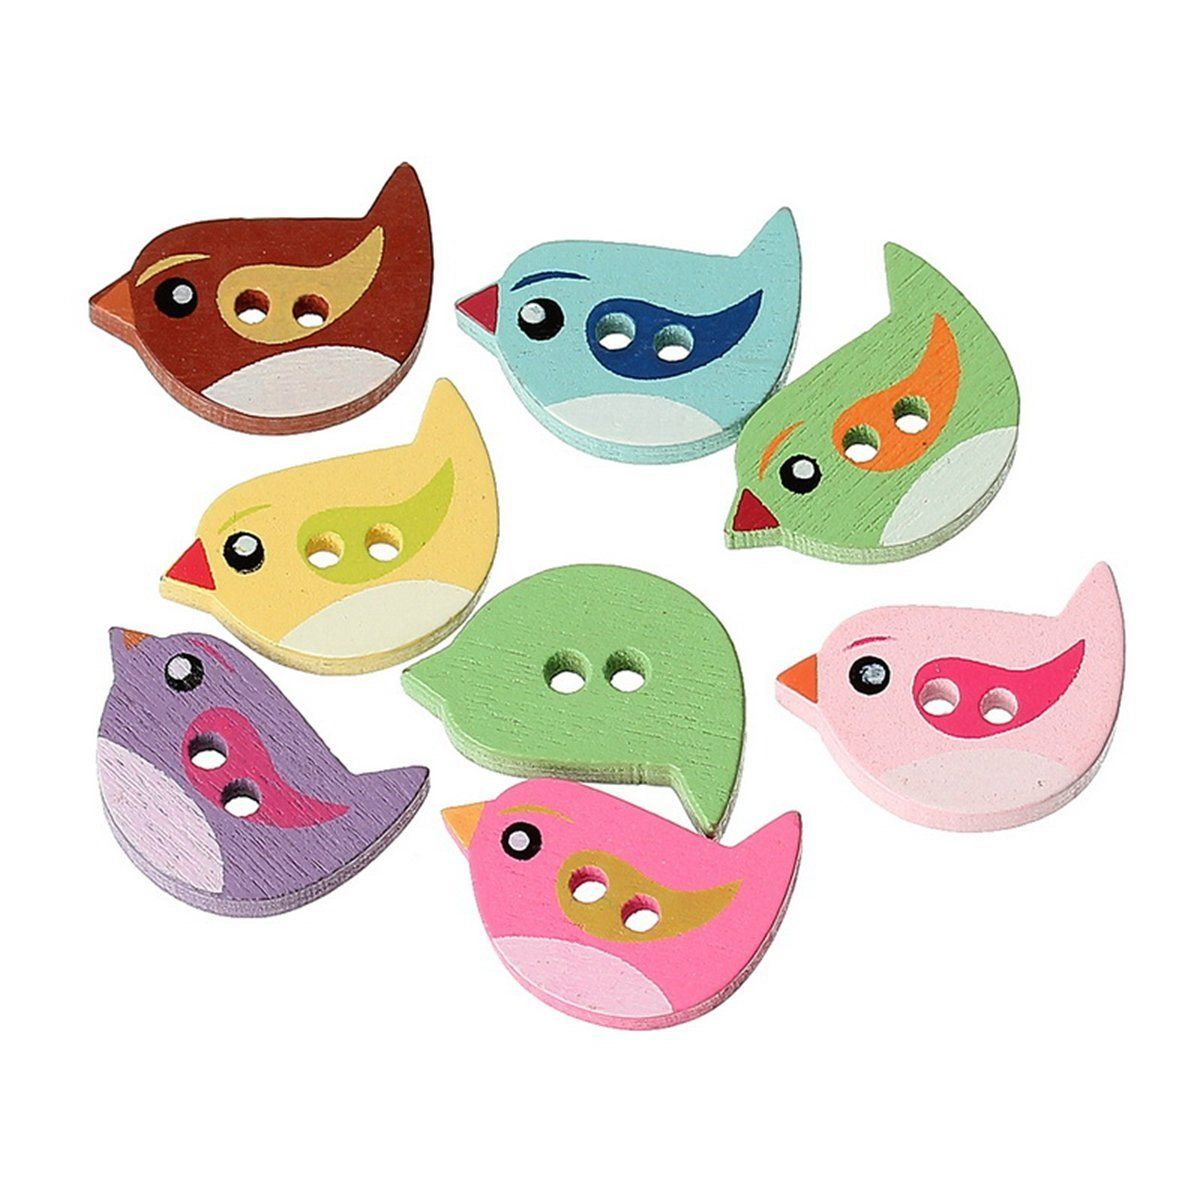 100pc Lovely Cartoon Animal Wood Buttons 2 Holes DIY Crafts Bouton For Kids Baby